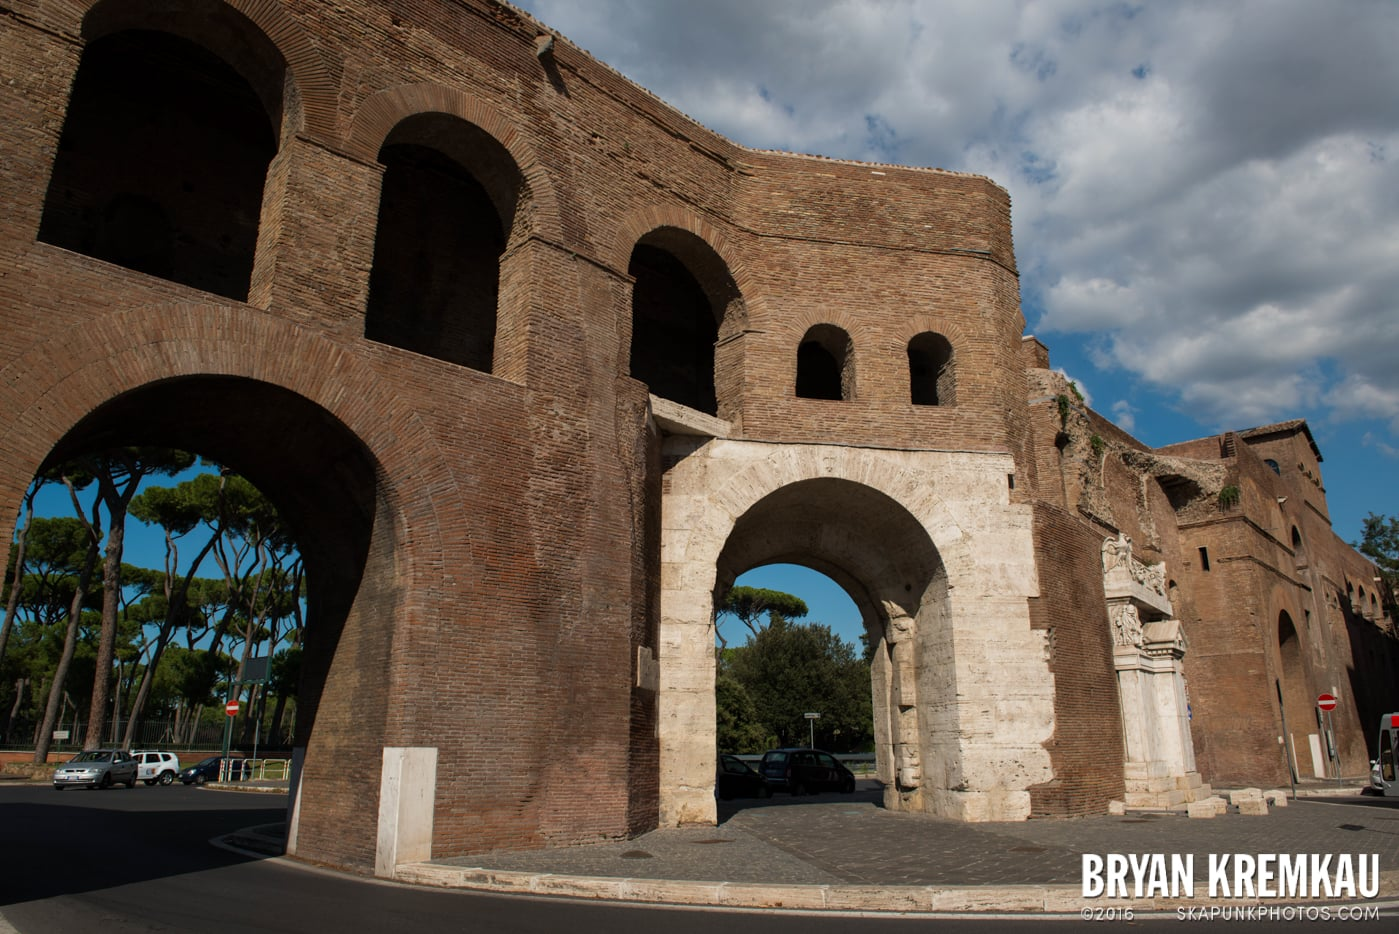 Italy Vacation - Day 12: Rome - 9.20.13 (5)